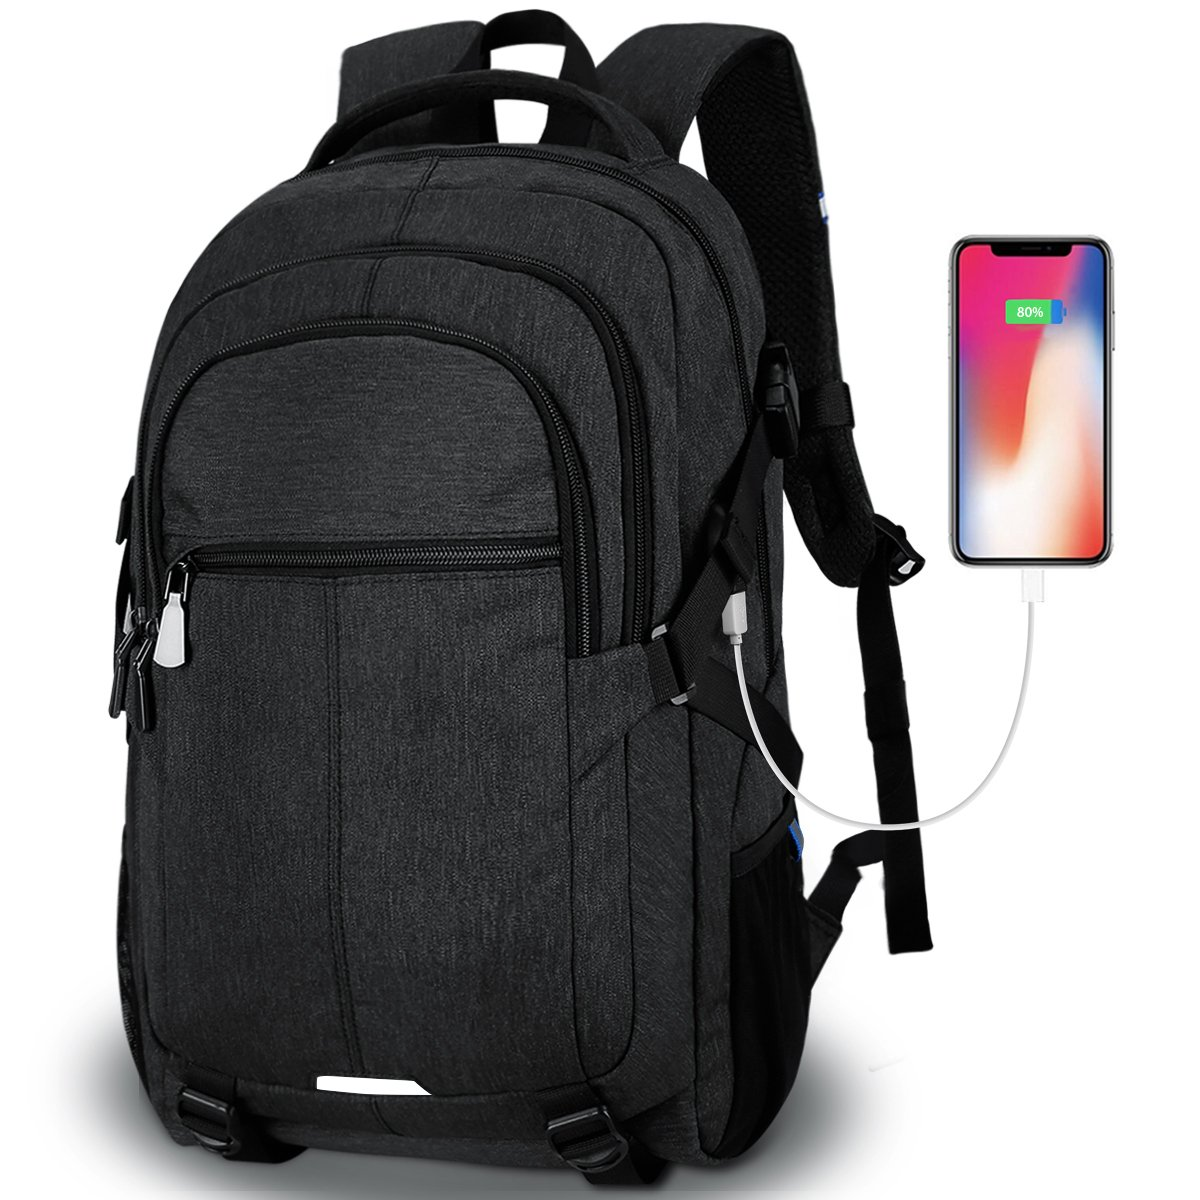 Tocode Laptop Backpack,Travel Backpacks for Men Water Resistant Backpack with USB Charging Port Large Multi-Compartments Student School Backpack Fits 15.6 inch Laptop and Notebook -Black TD-2230-Black-Xin